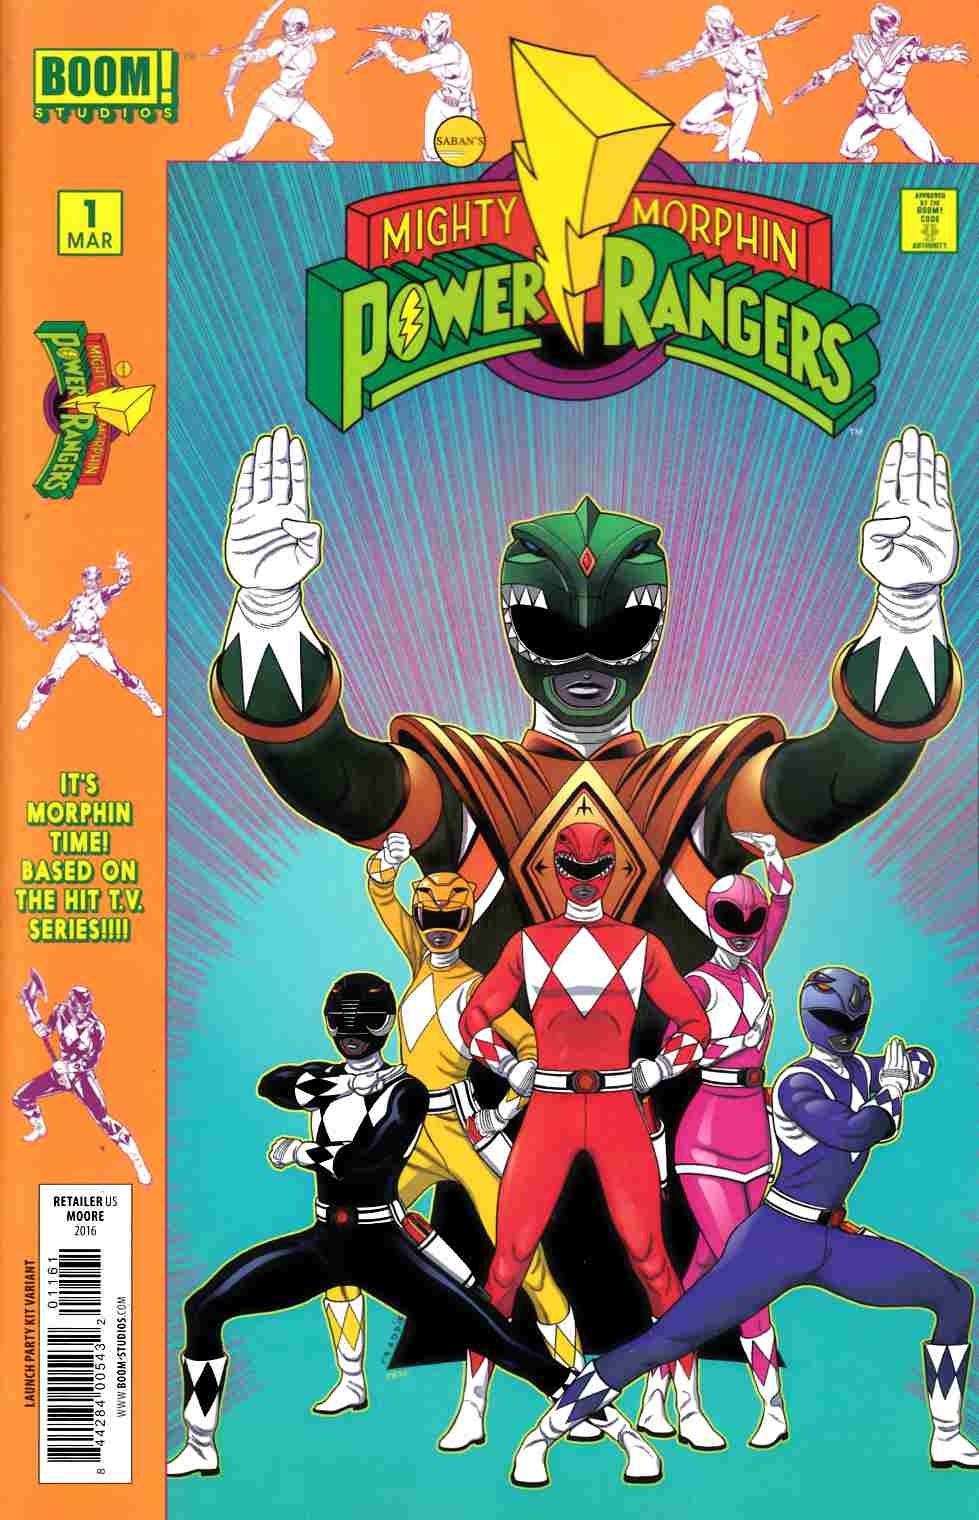 Mighty Morphin Power Rangers #1 Launch Party Variant Cover [Boom Comic]